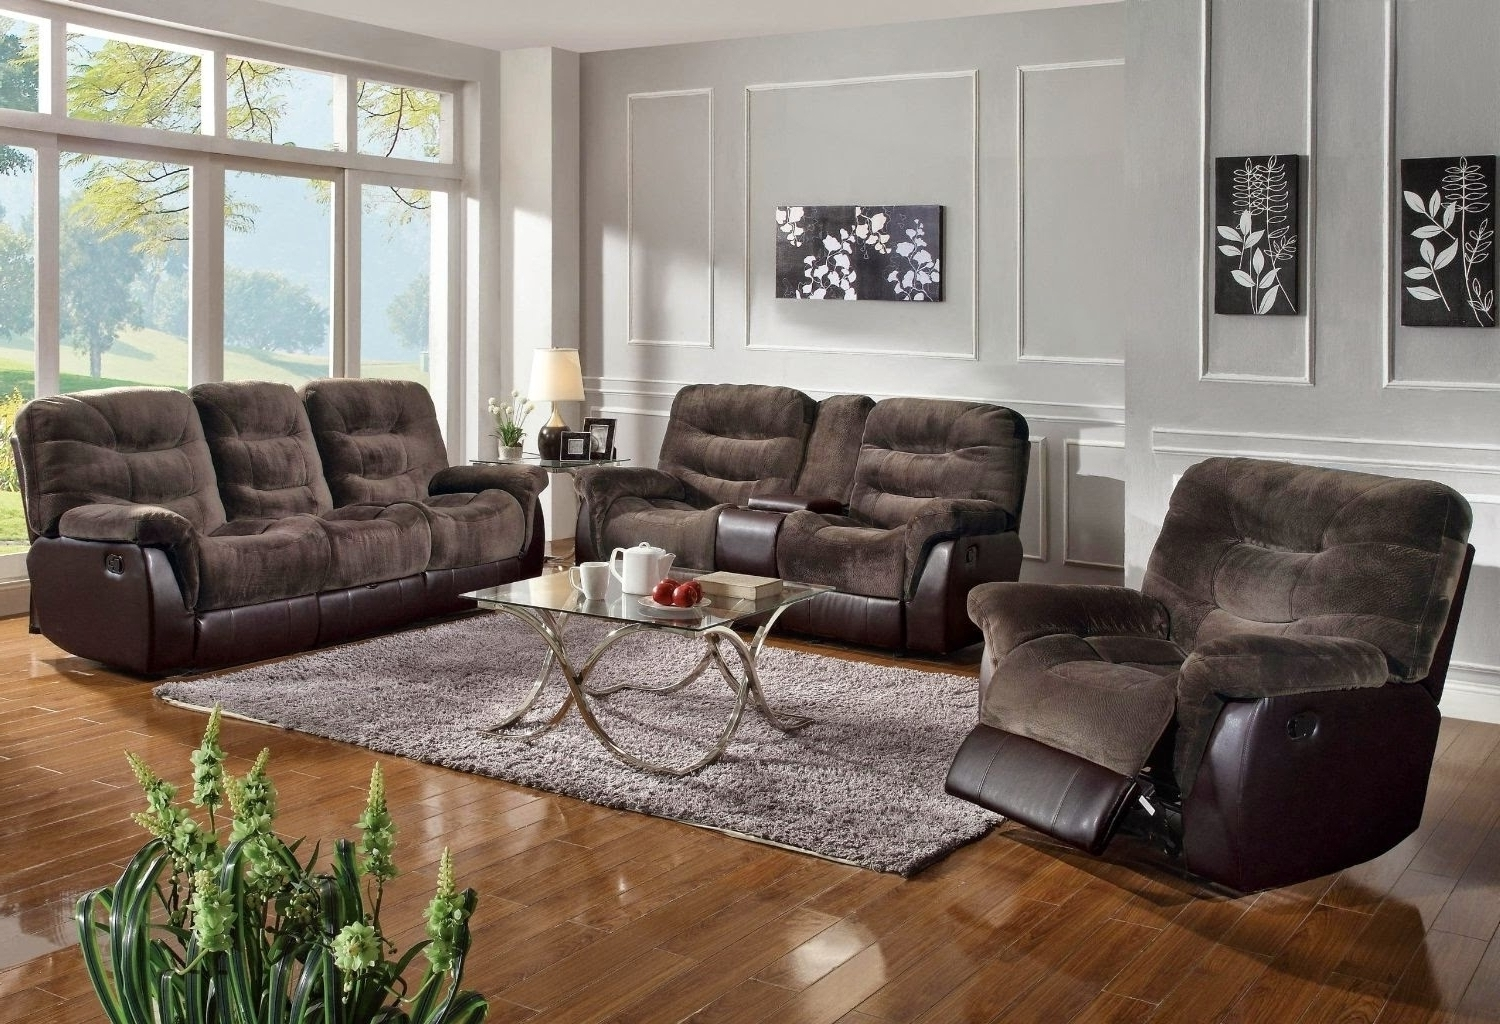 Fashionable Furniture Reclining Sectional Sofas For Small Spaces Reclining Throughout Sectional Sofas In Small Spaces (View 17 of 20)